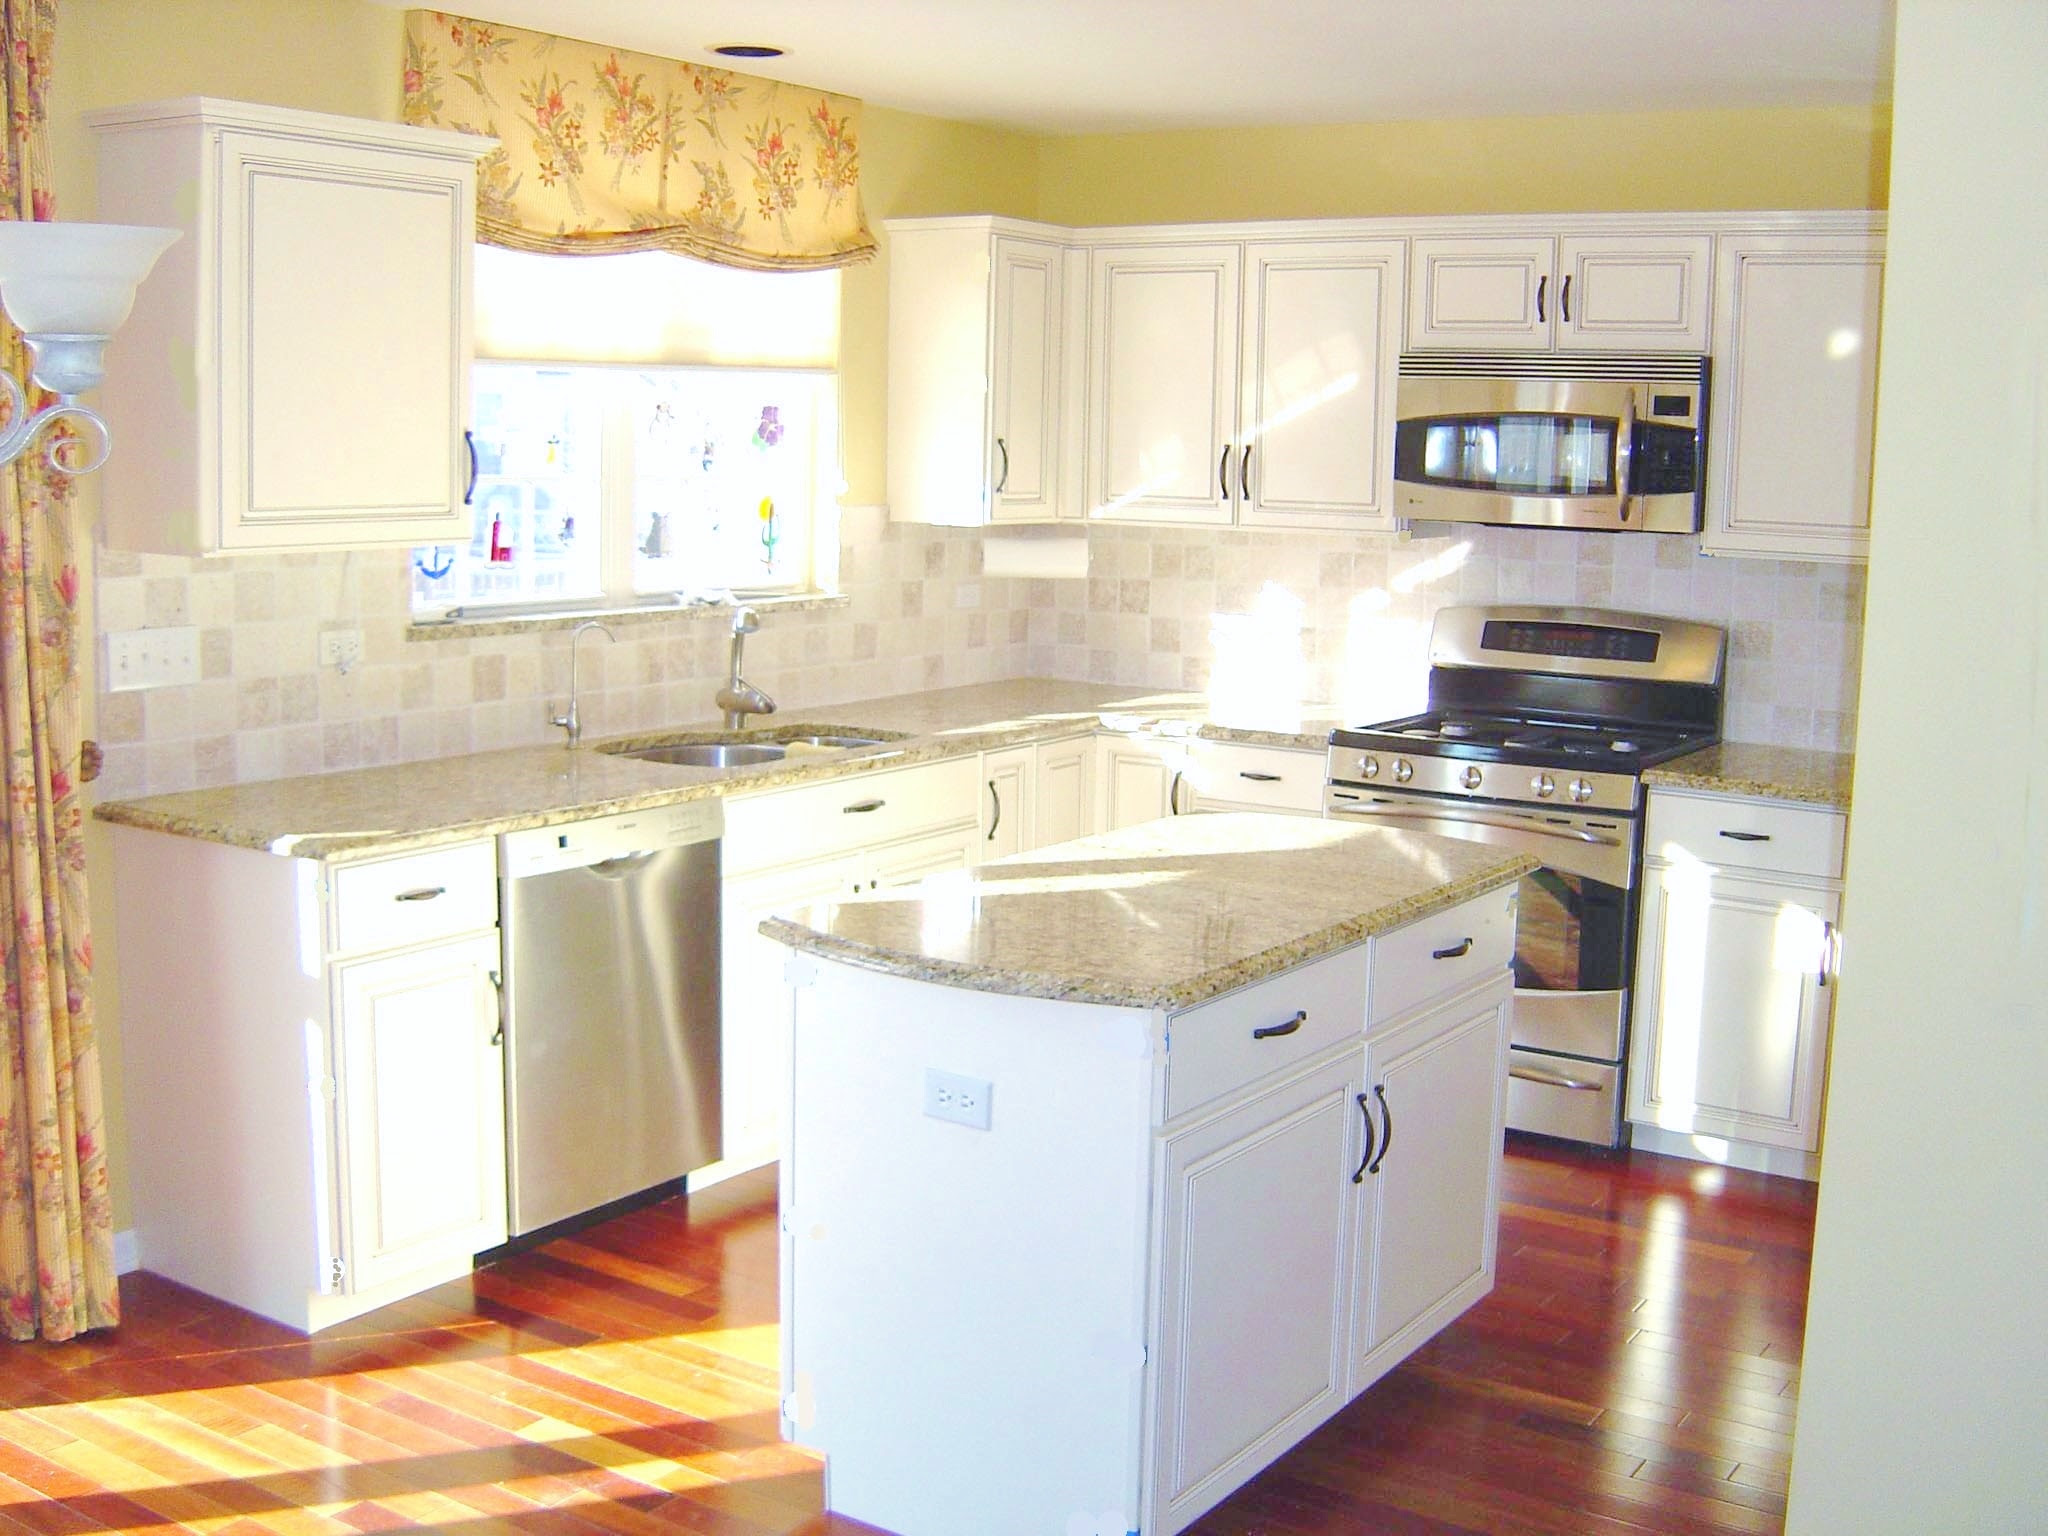 How To Make Old Kitchen Cabinets Look New Homswet